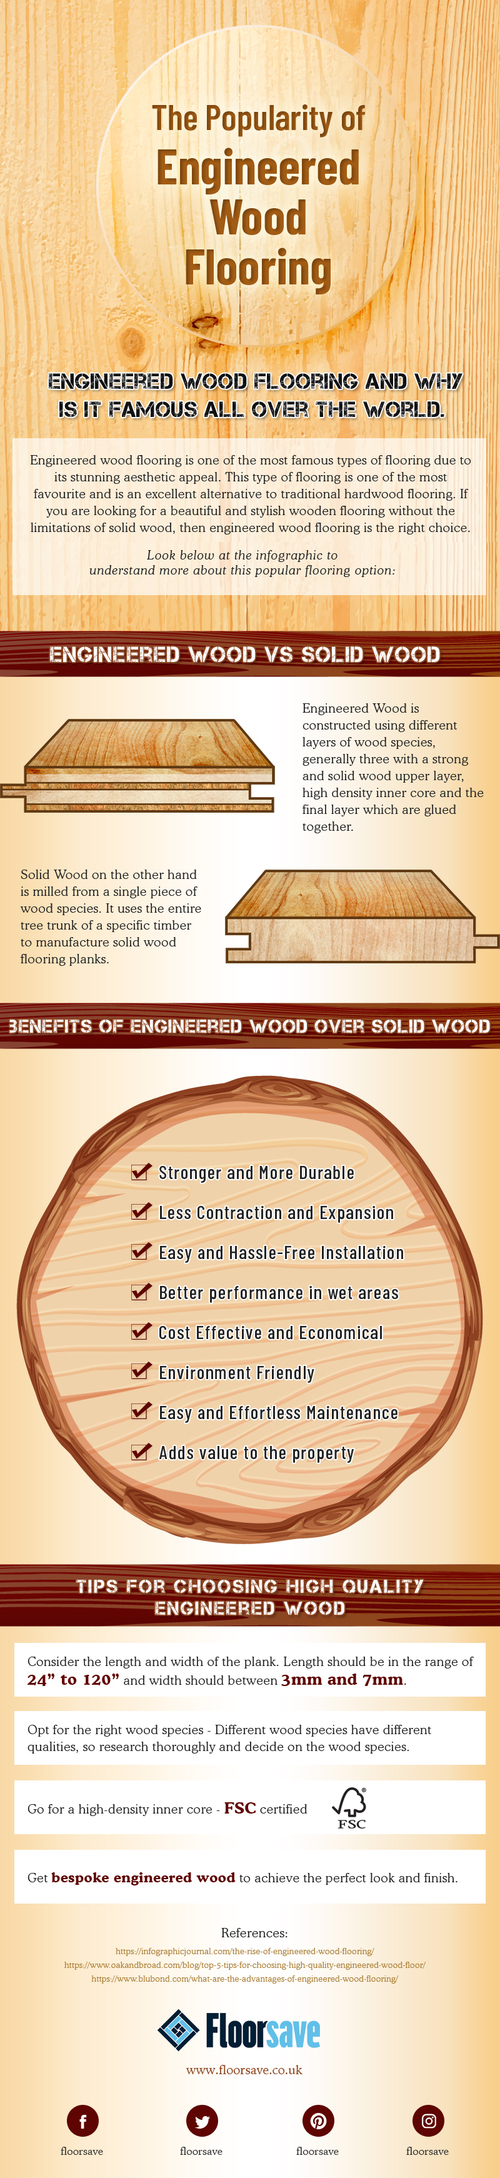 The Popularity of Engineered Wood Flooring via Floorsave